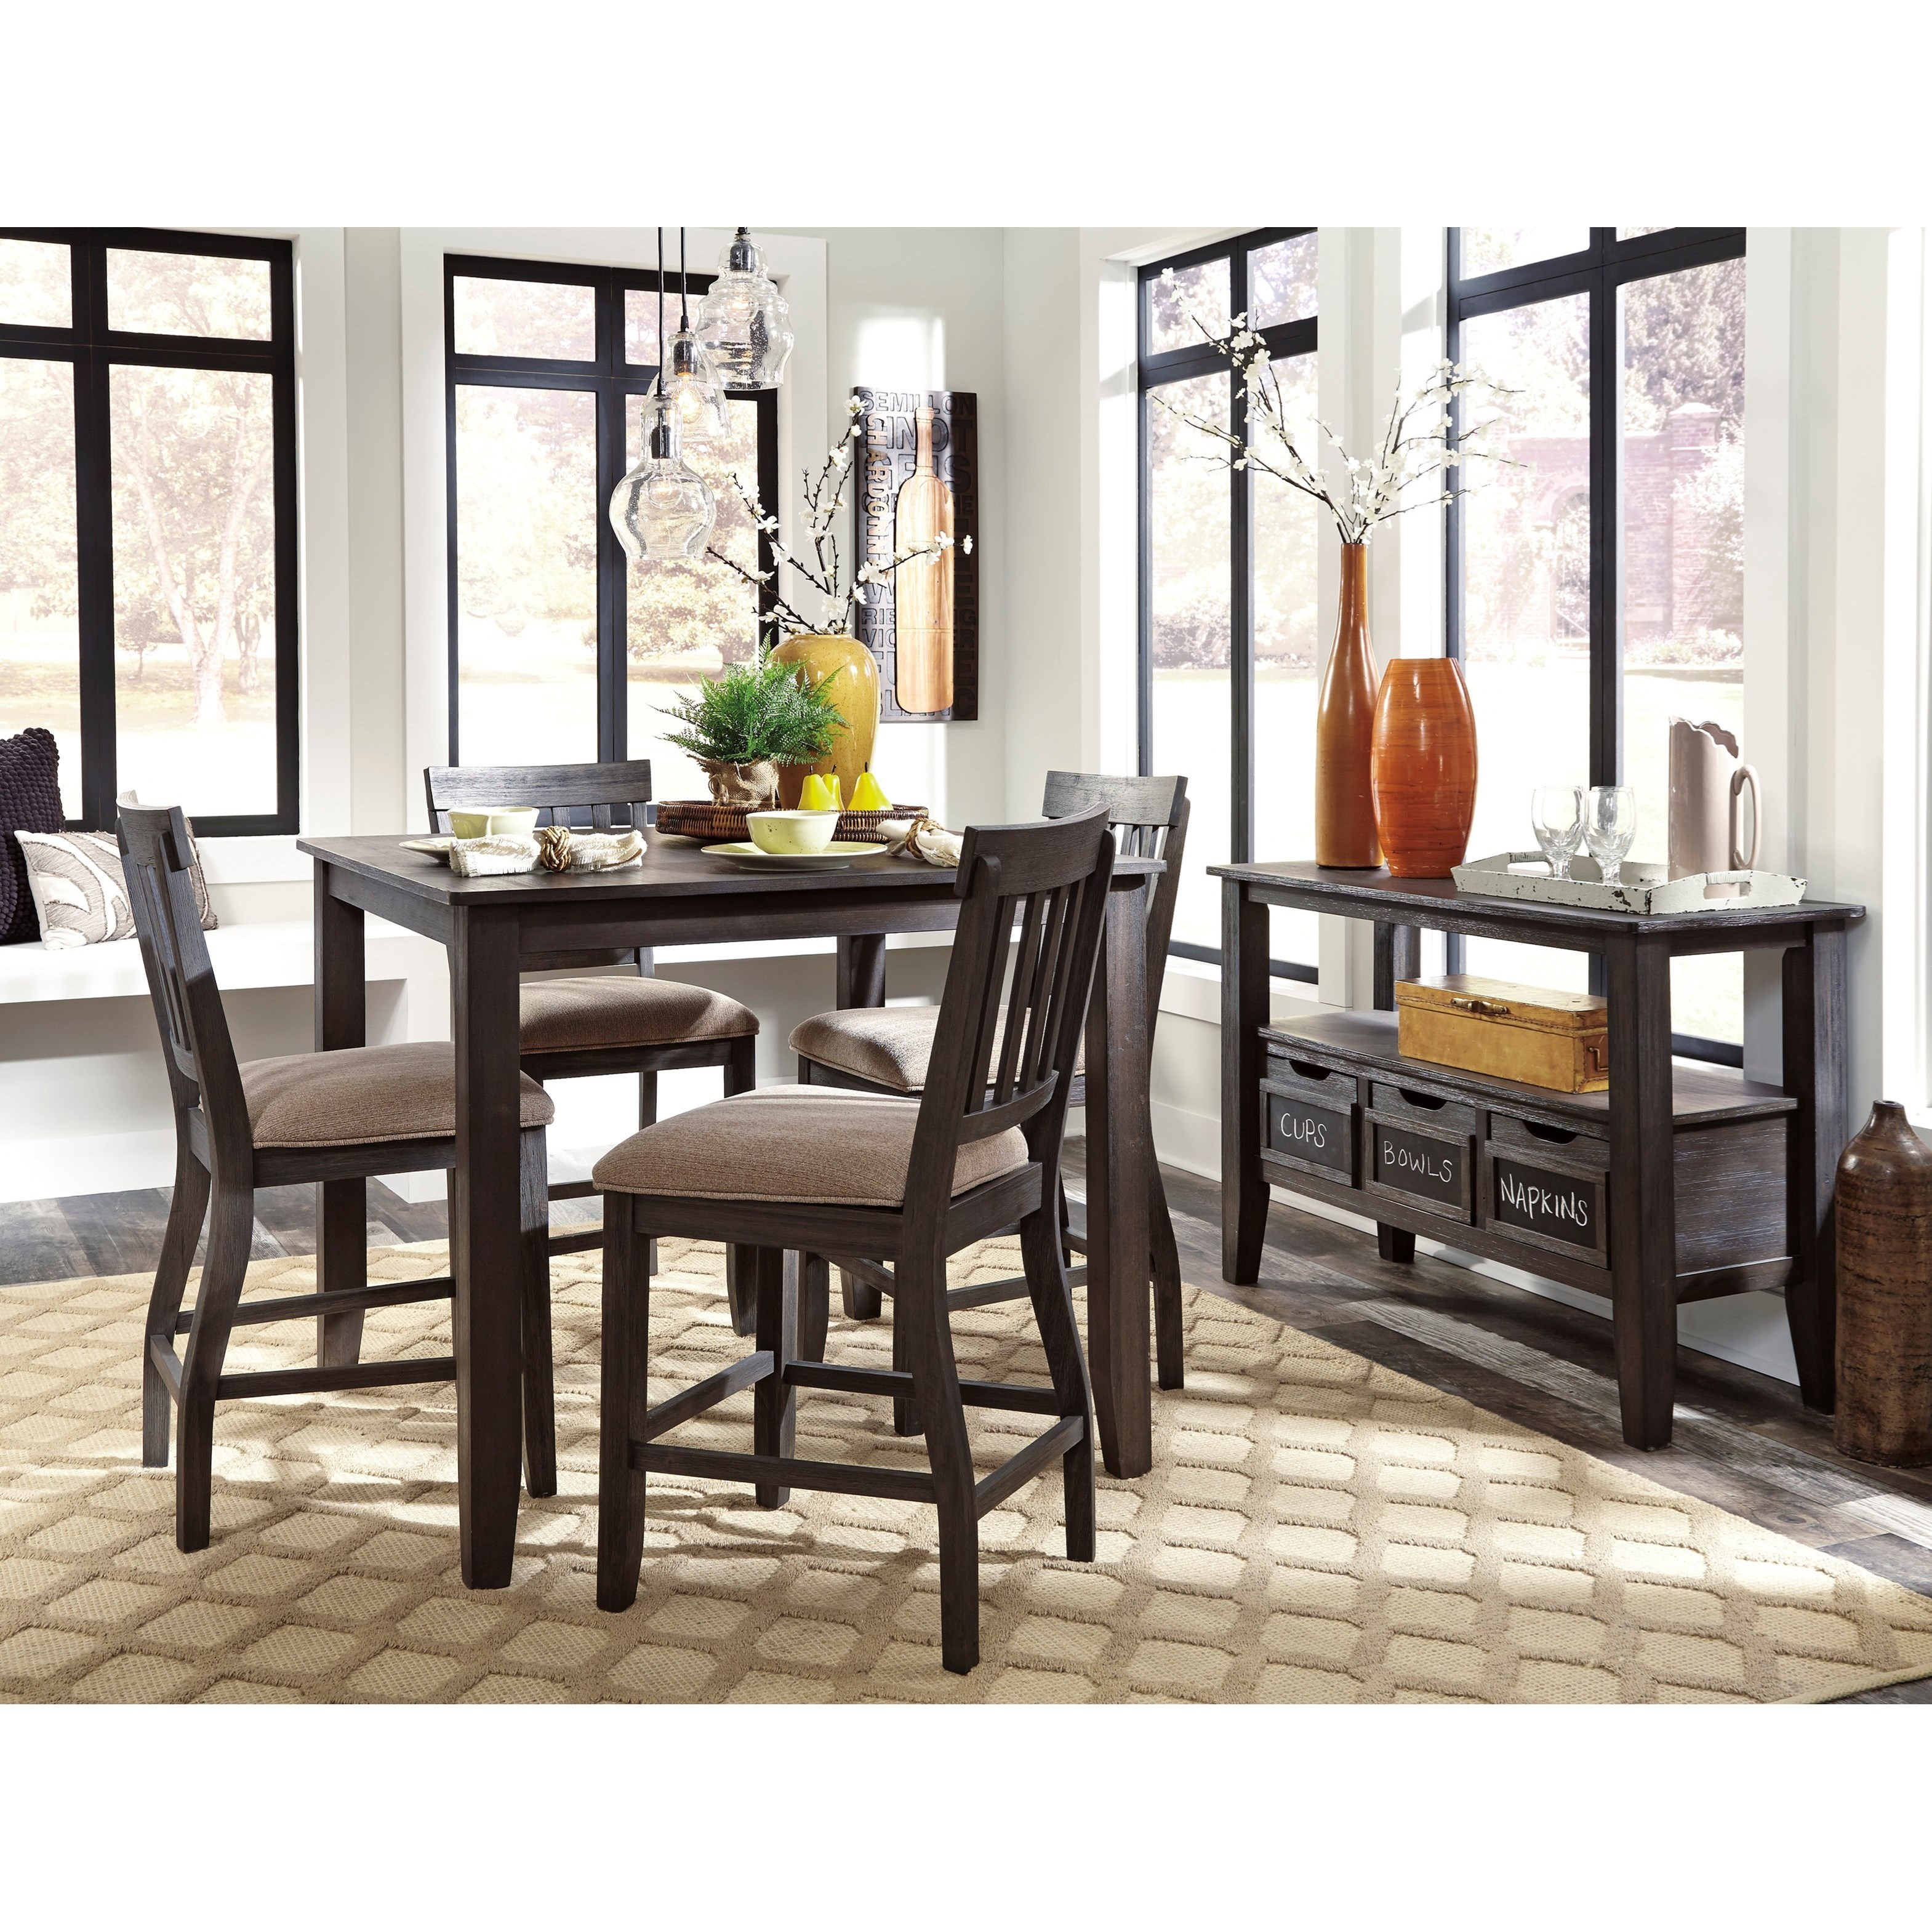 Signature Design by Ashley Dresbar Casual Dining Room Group - Item Number: D485 Dining Room Group 2